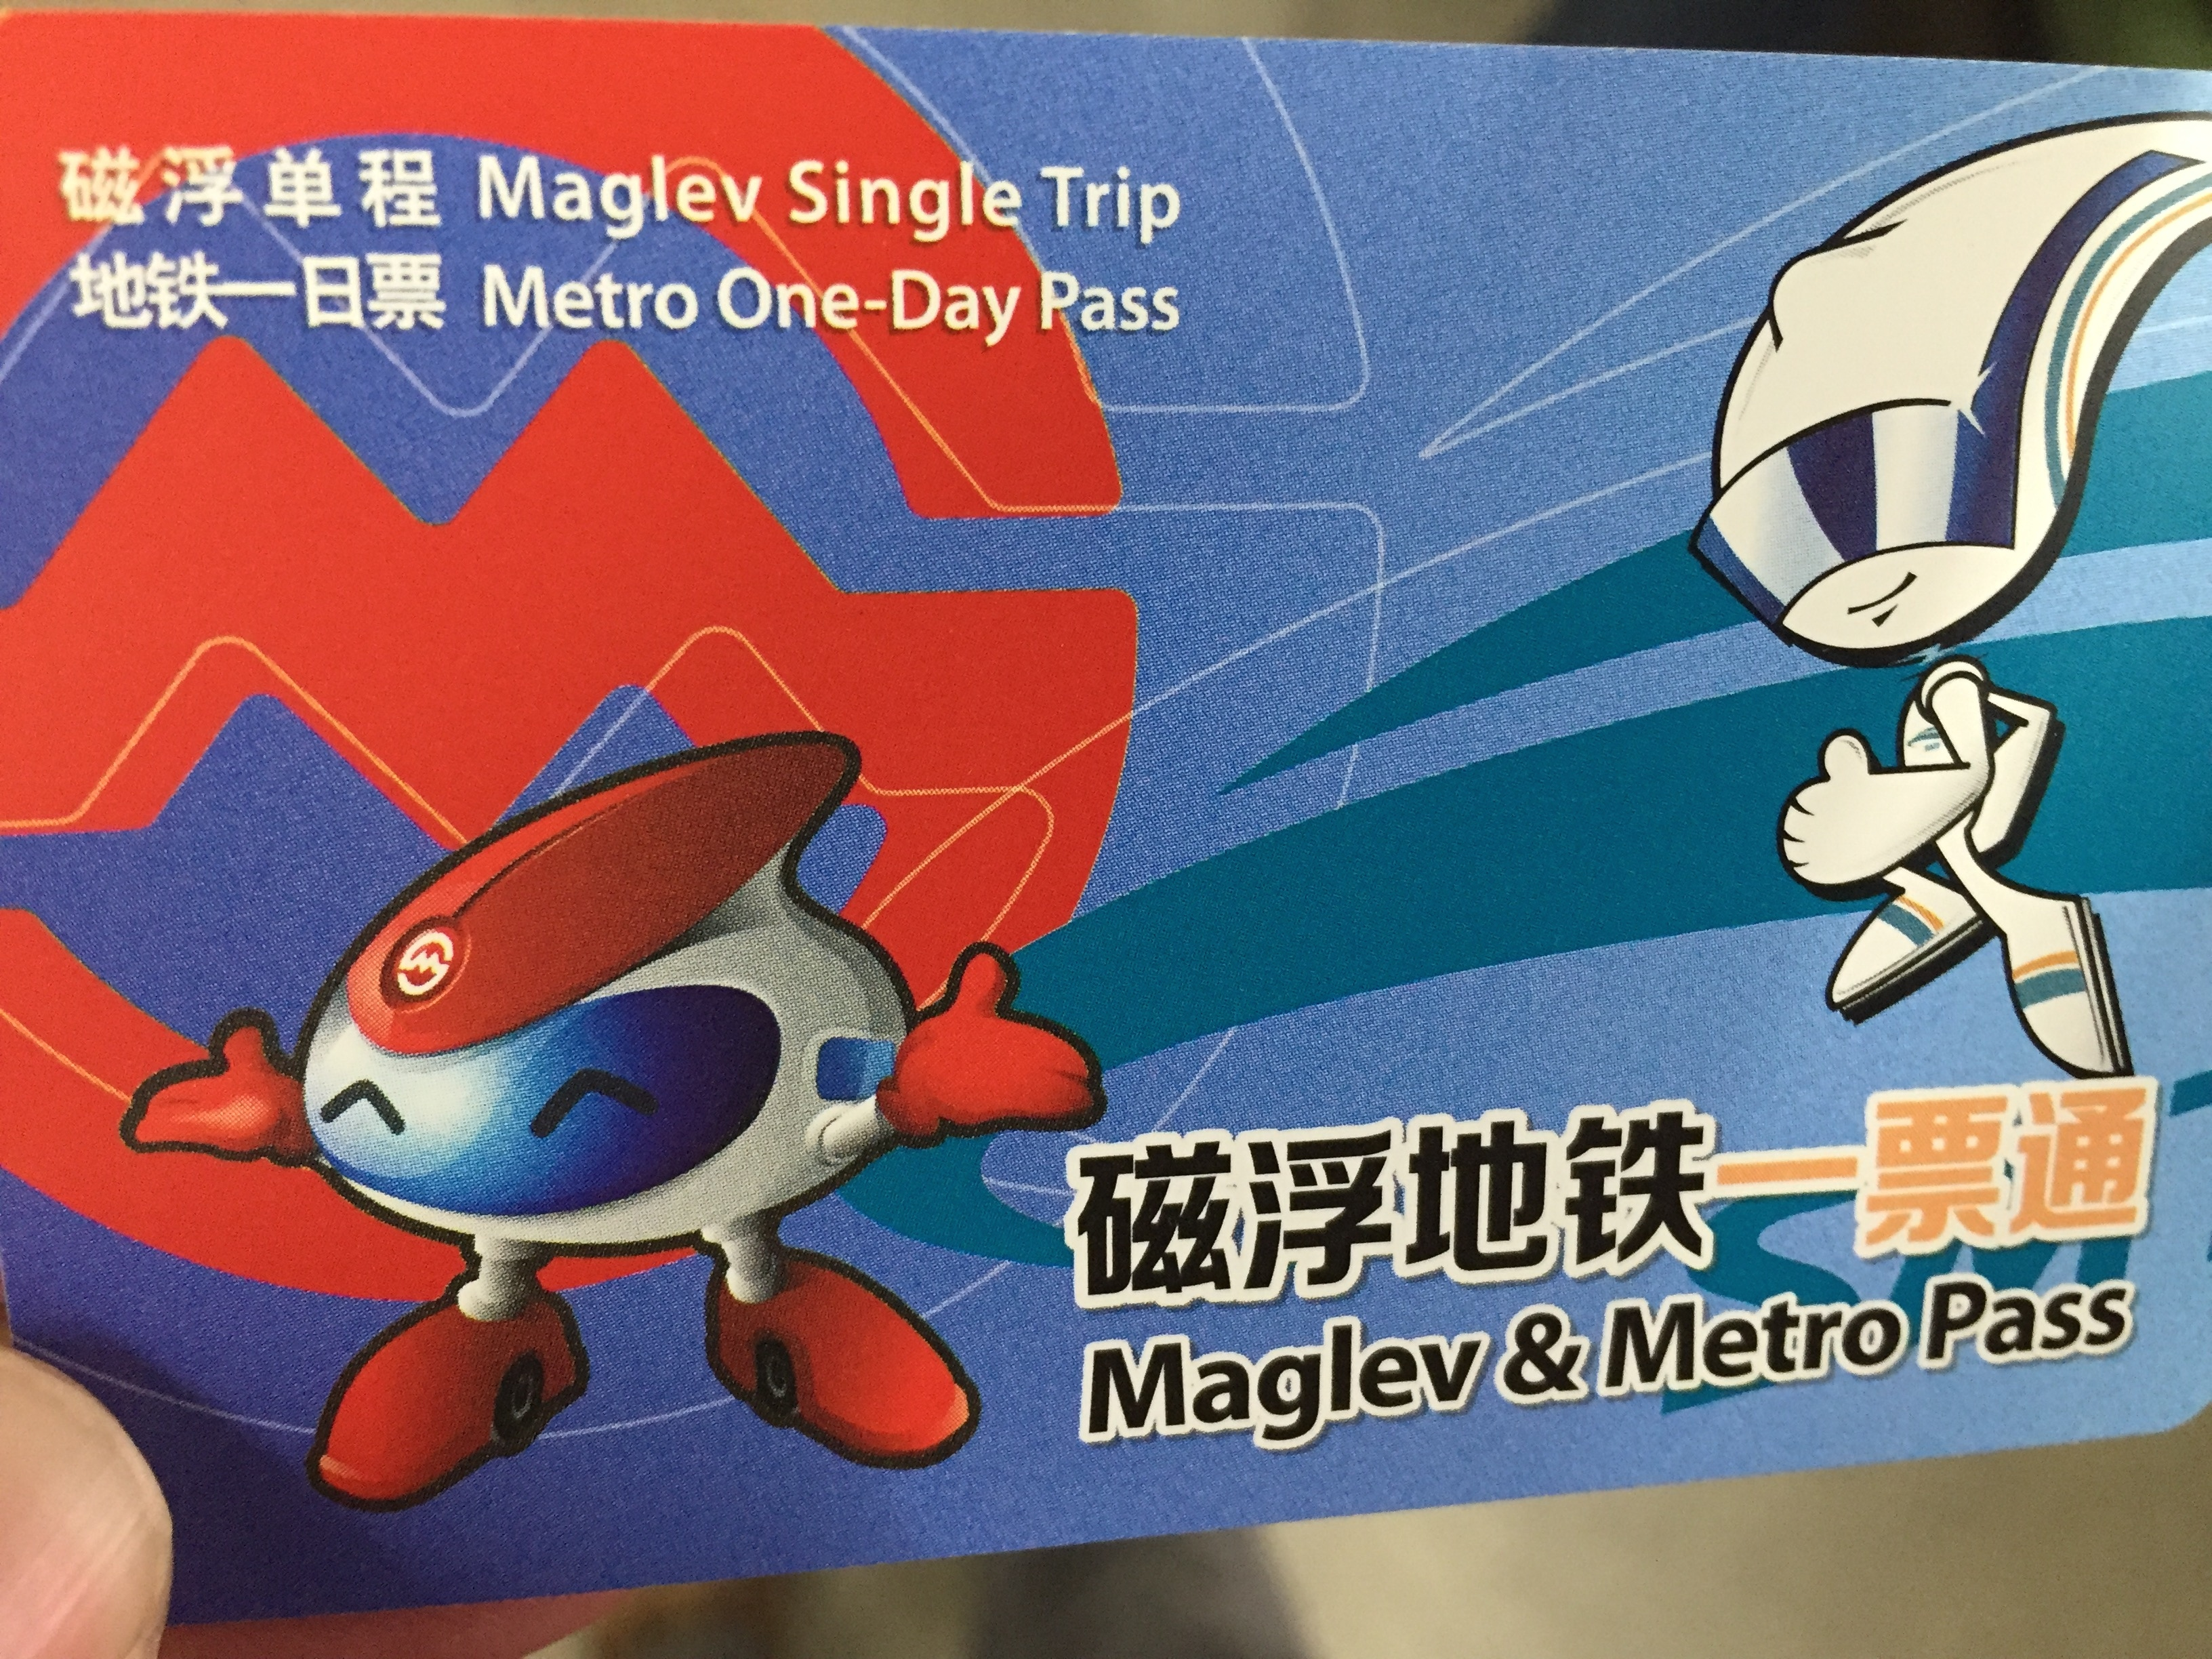 Maglev and Metro